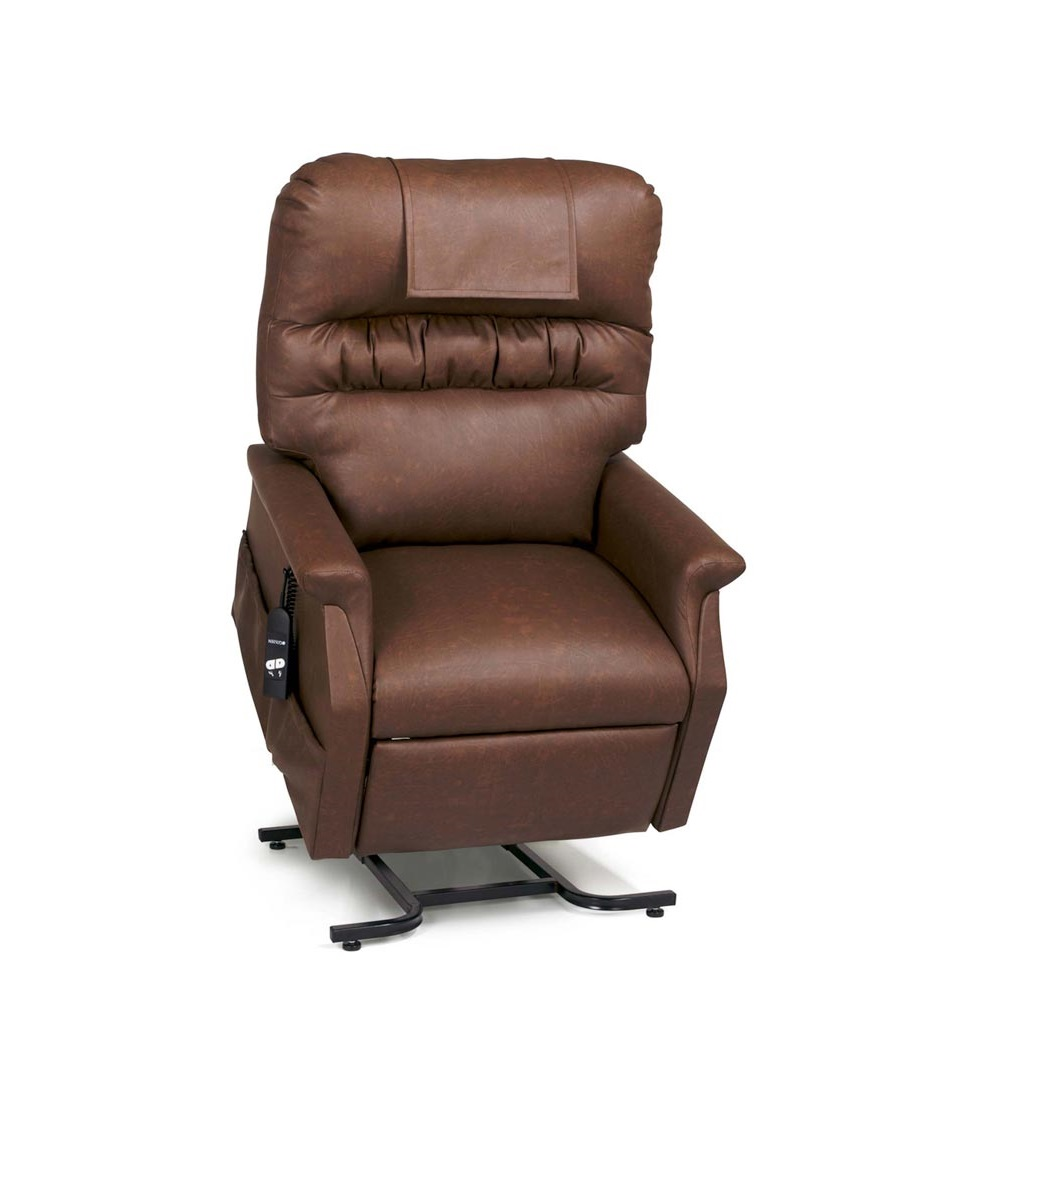 Power Lift Recliner  Lift Chair  Rentals  Oswalds